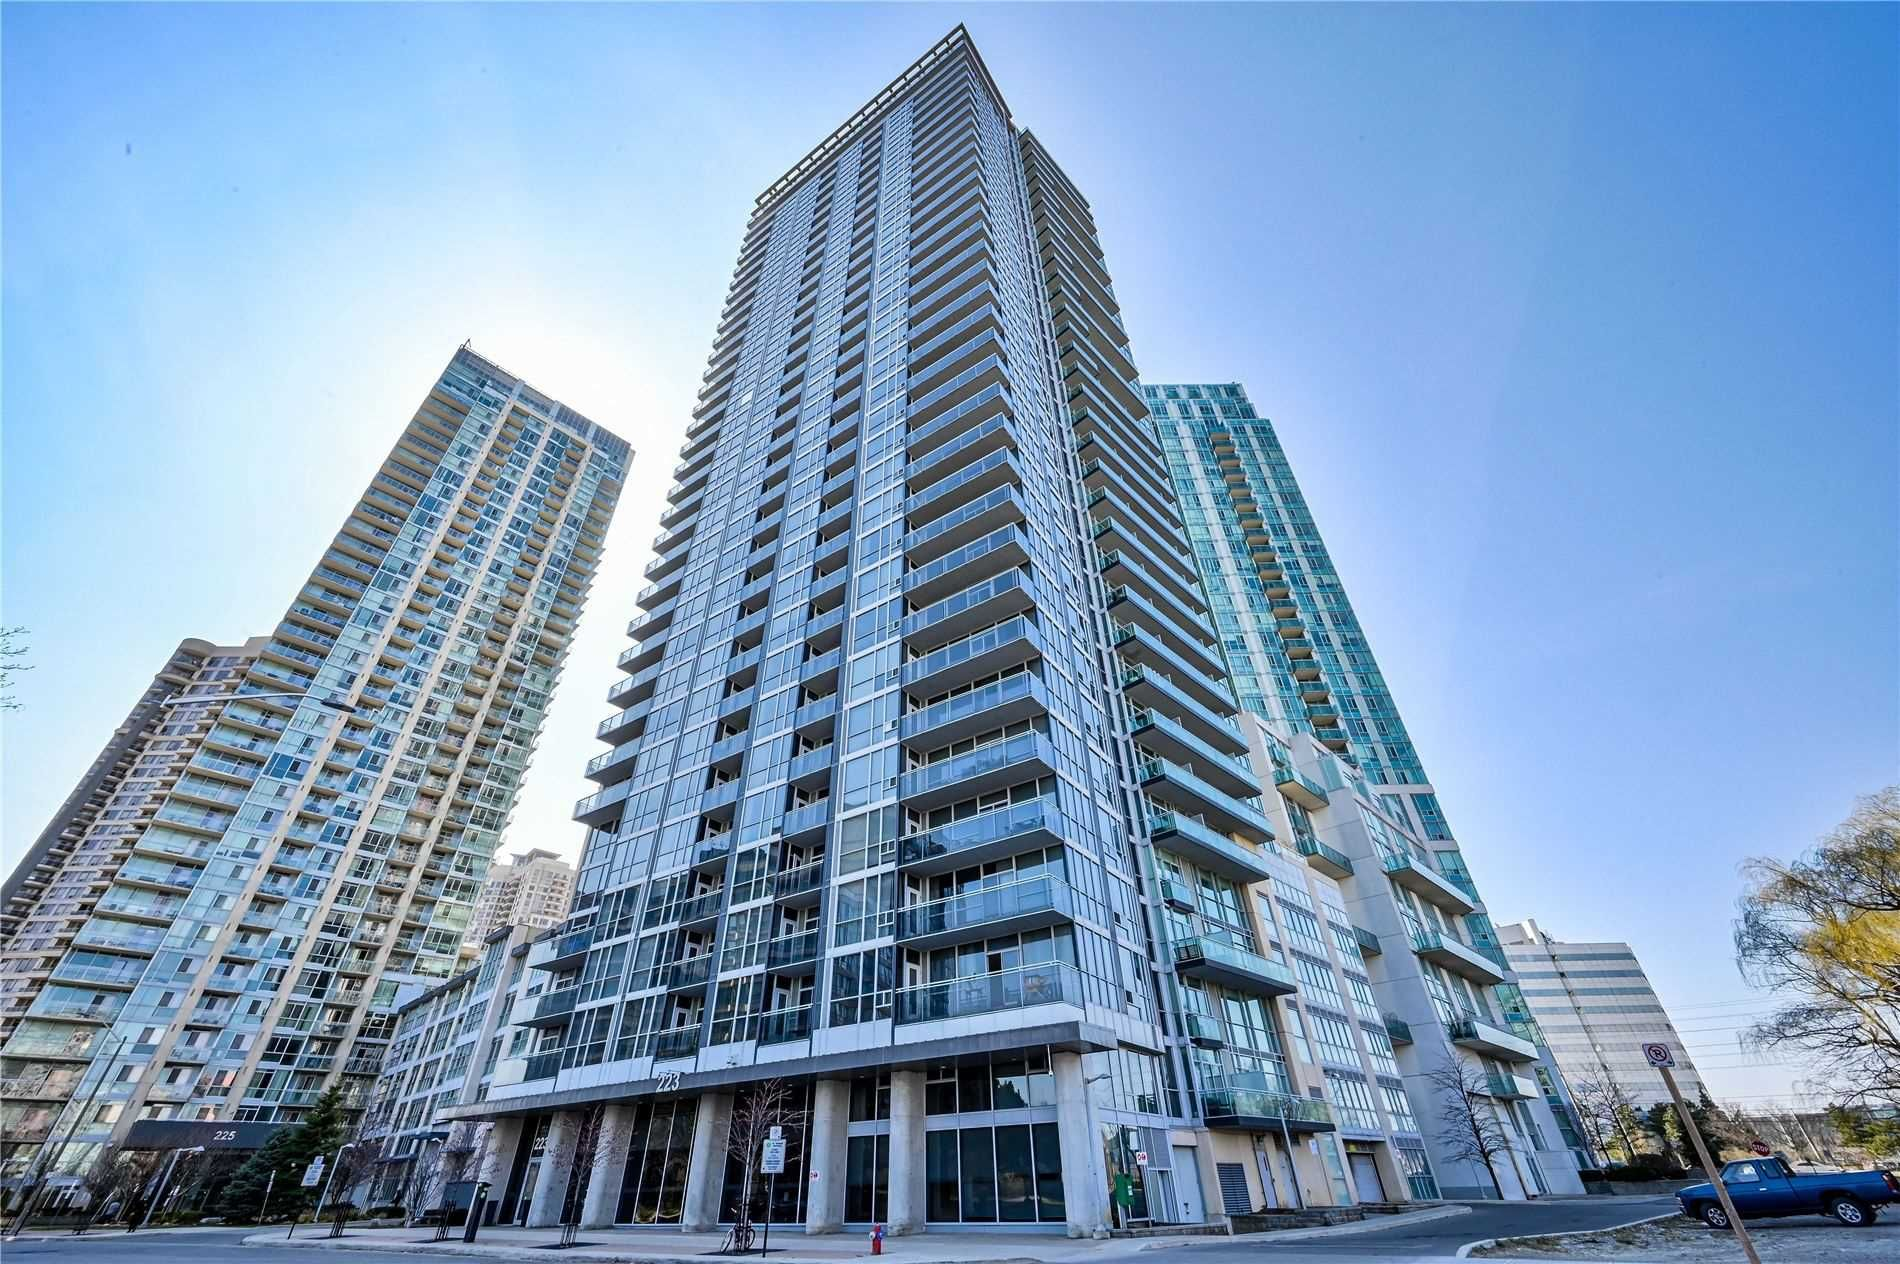 Main Photo: 1706 223 Webb Drive in Mississauga: City Centre Condo for sale : MLS®# W5185388